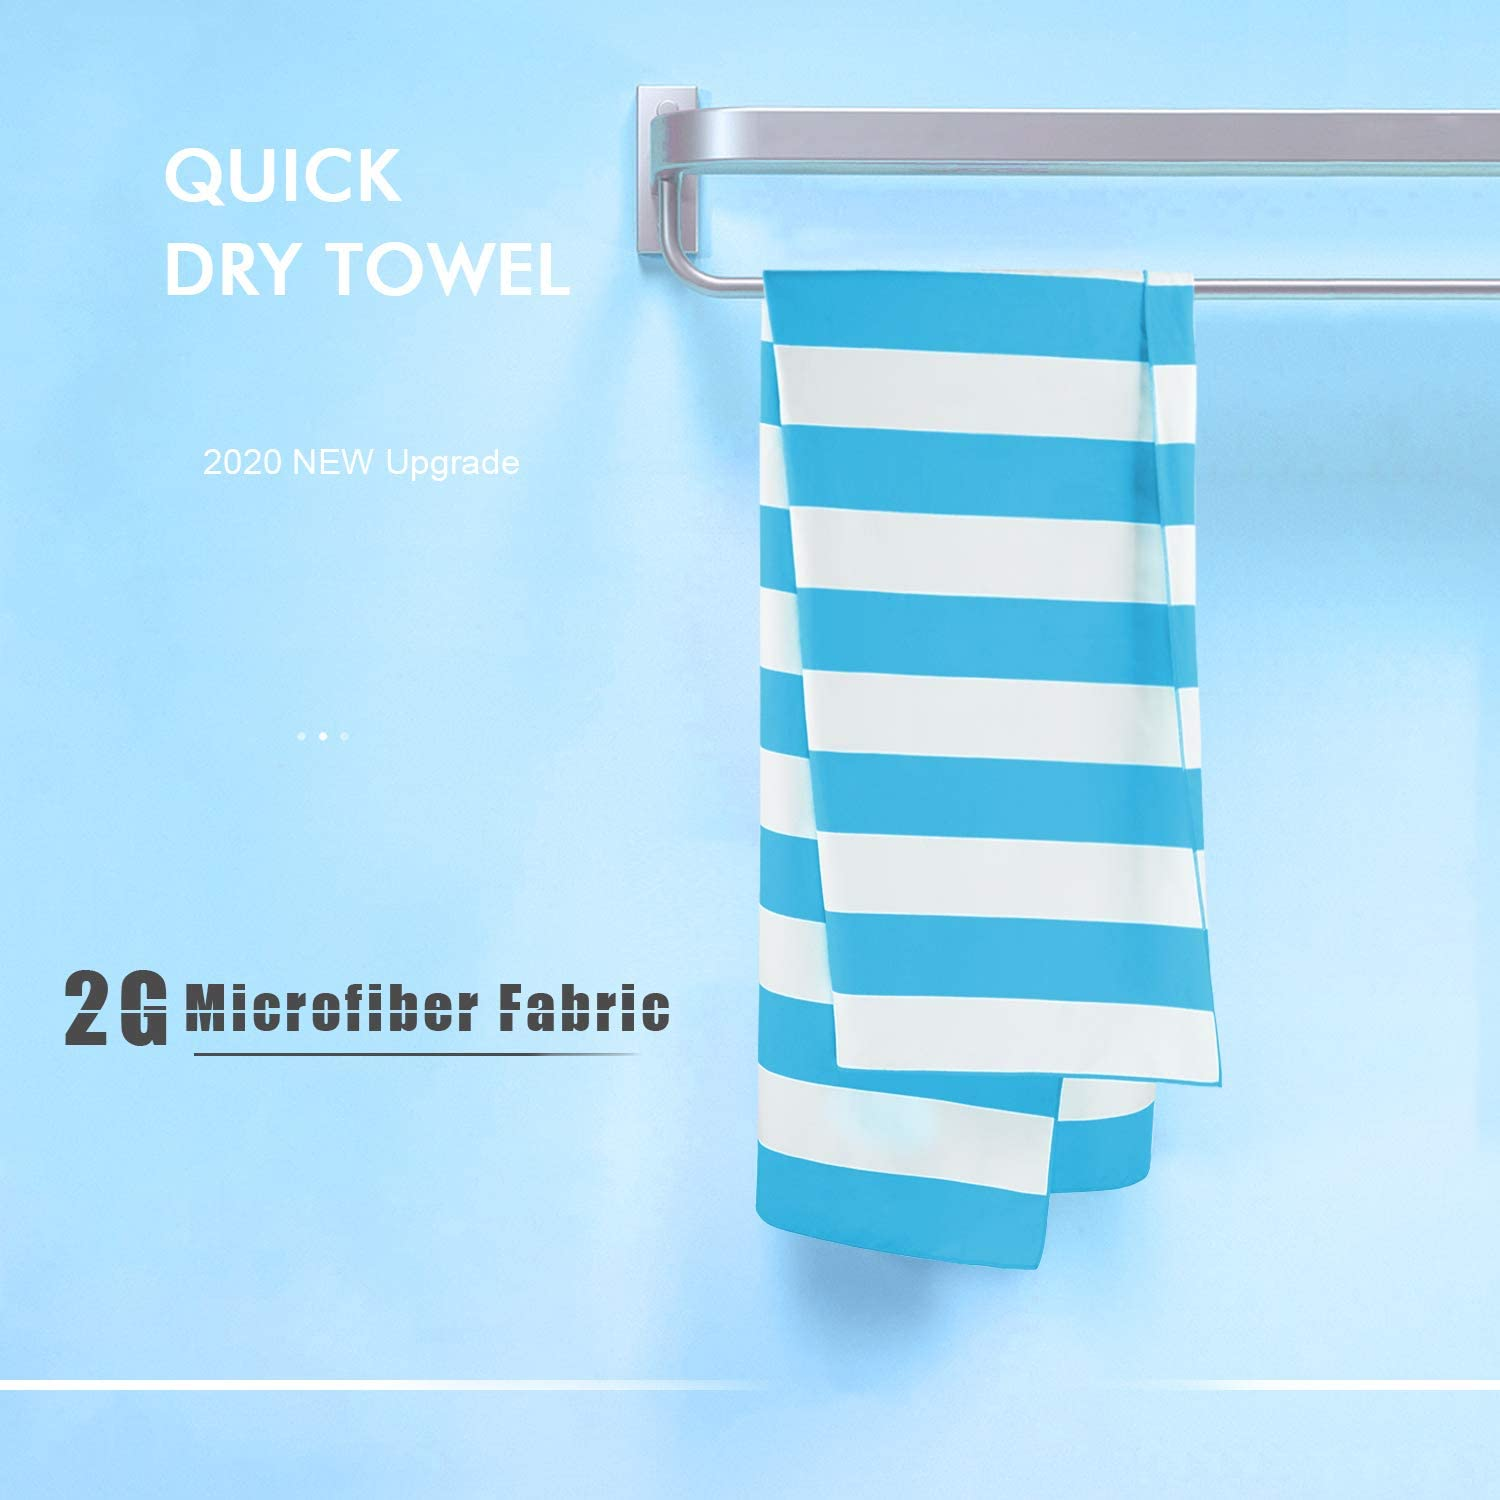 Sand Free Towel Extra Large XL 79x36, Large 67x36 Compact Lightweight/… 1 or 6 Pack DARCHEN Microfiber Beach Towels Oversize Quick Dry Towel for Kids Adult - Travel Beach Towel for Swimming Pool